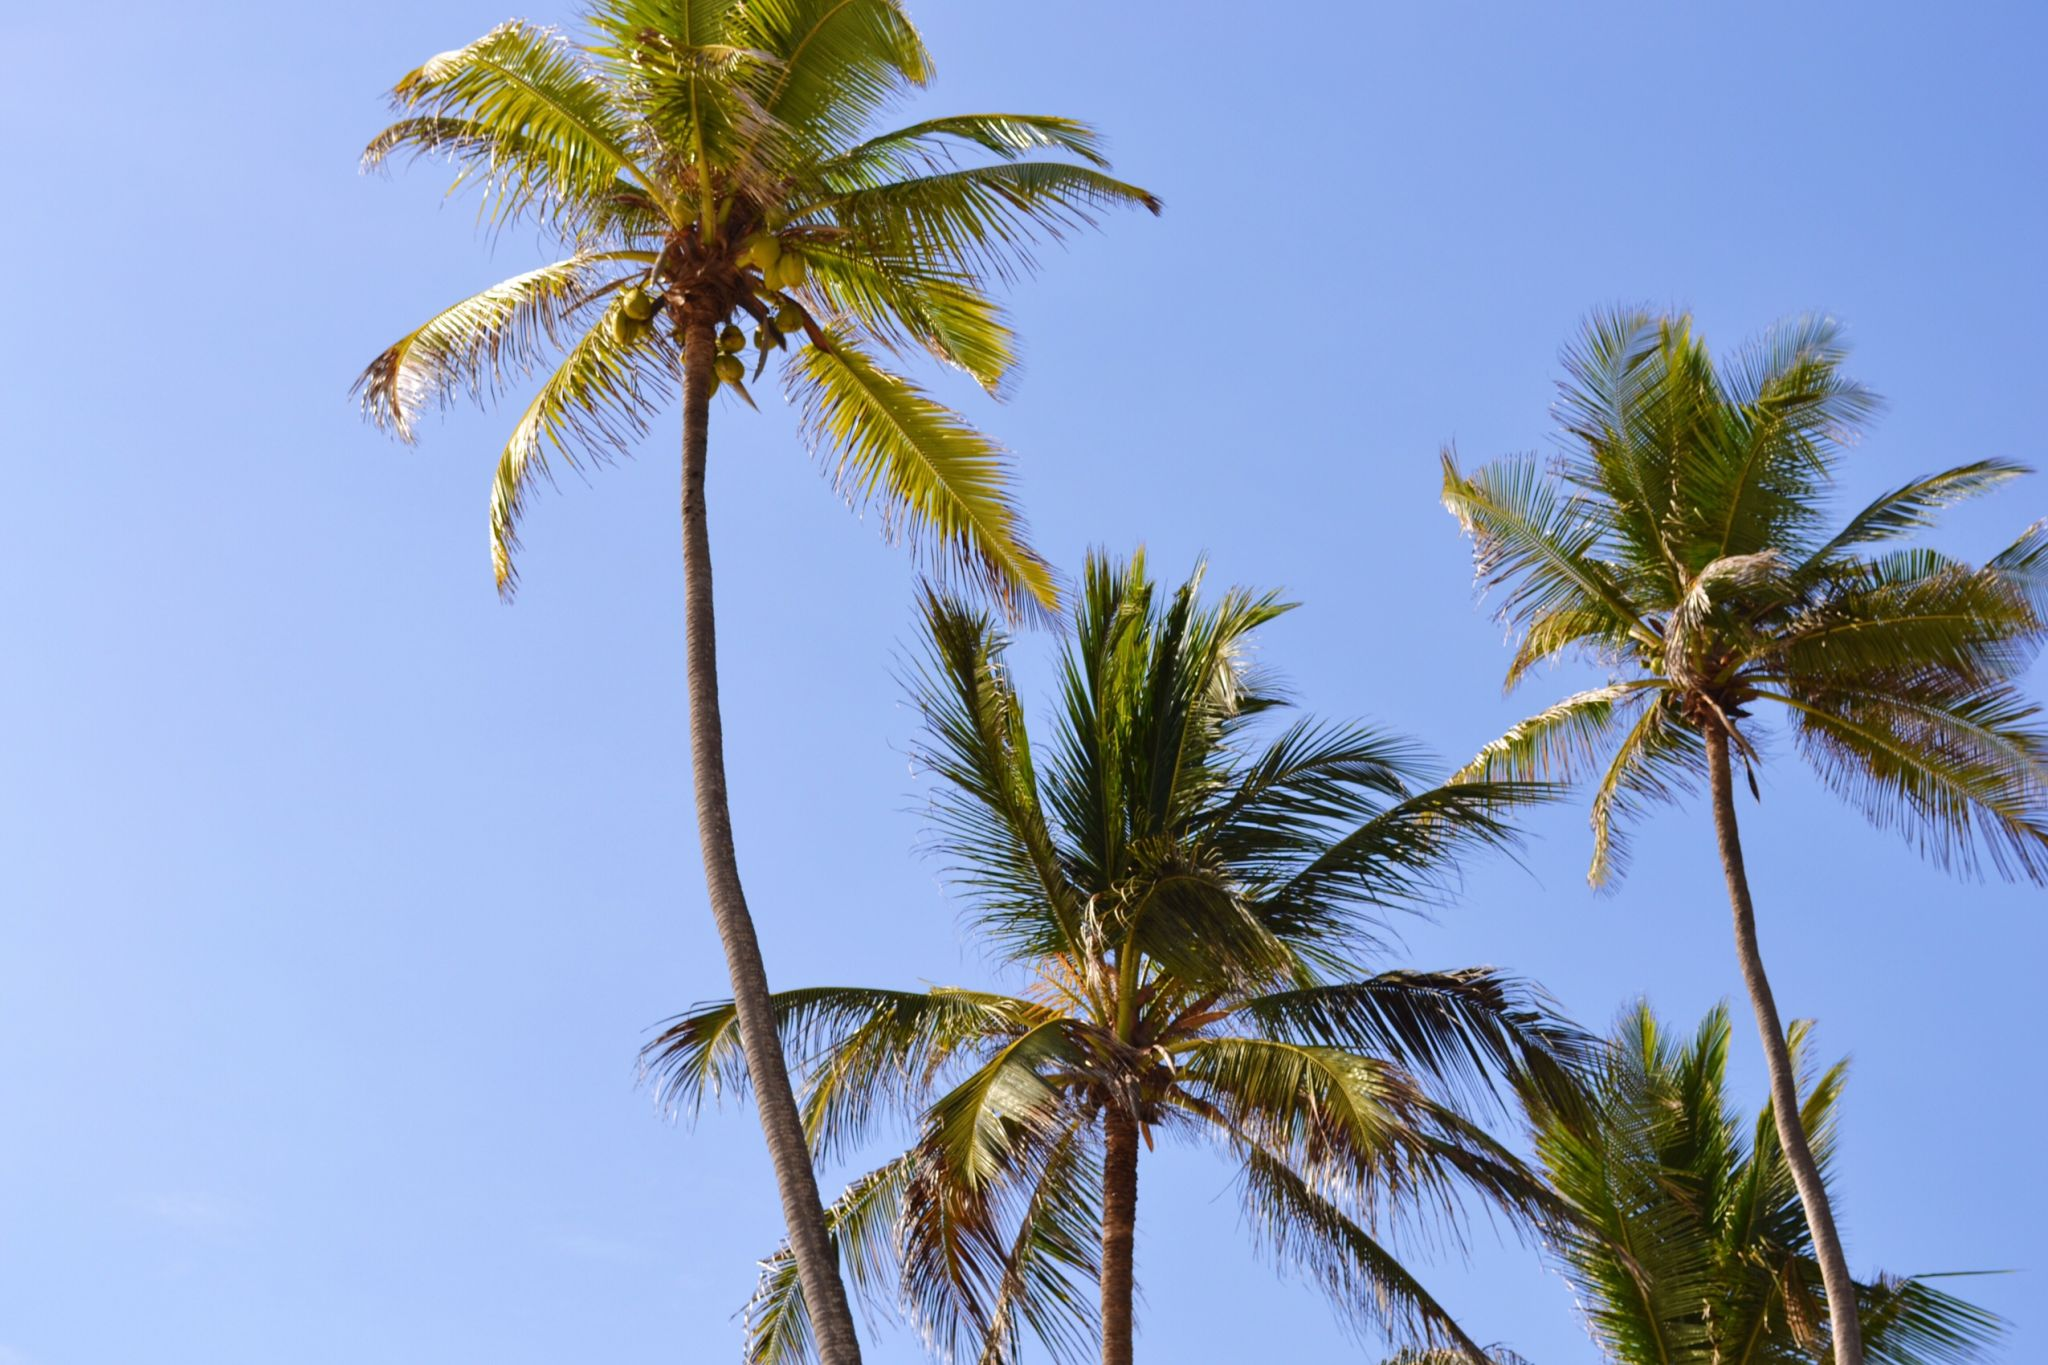 Image of palm trees in Zanzibar